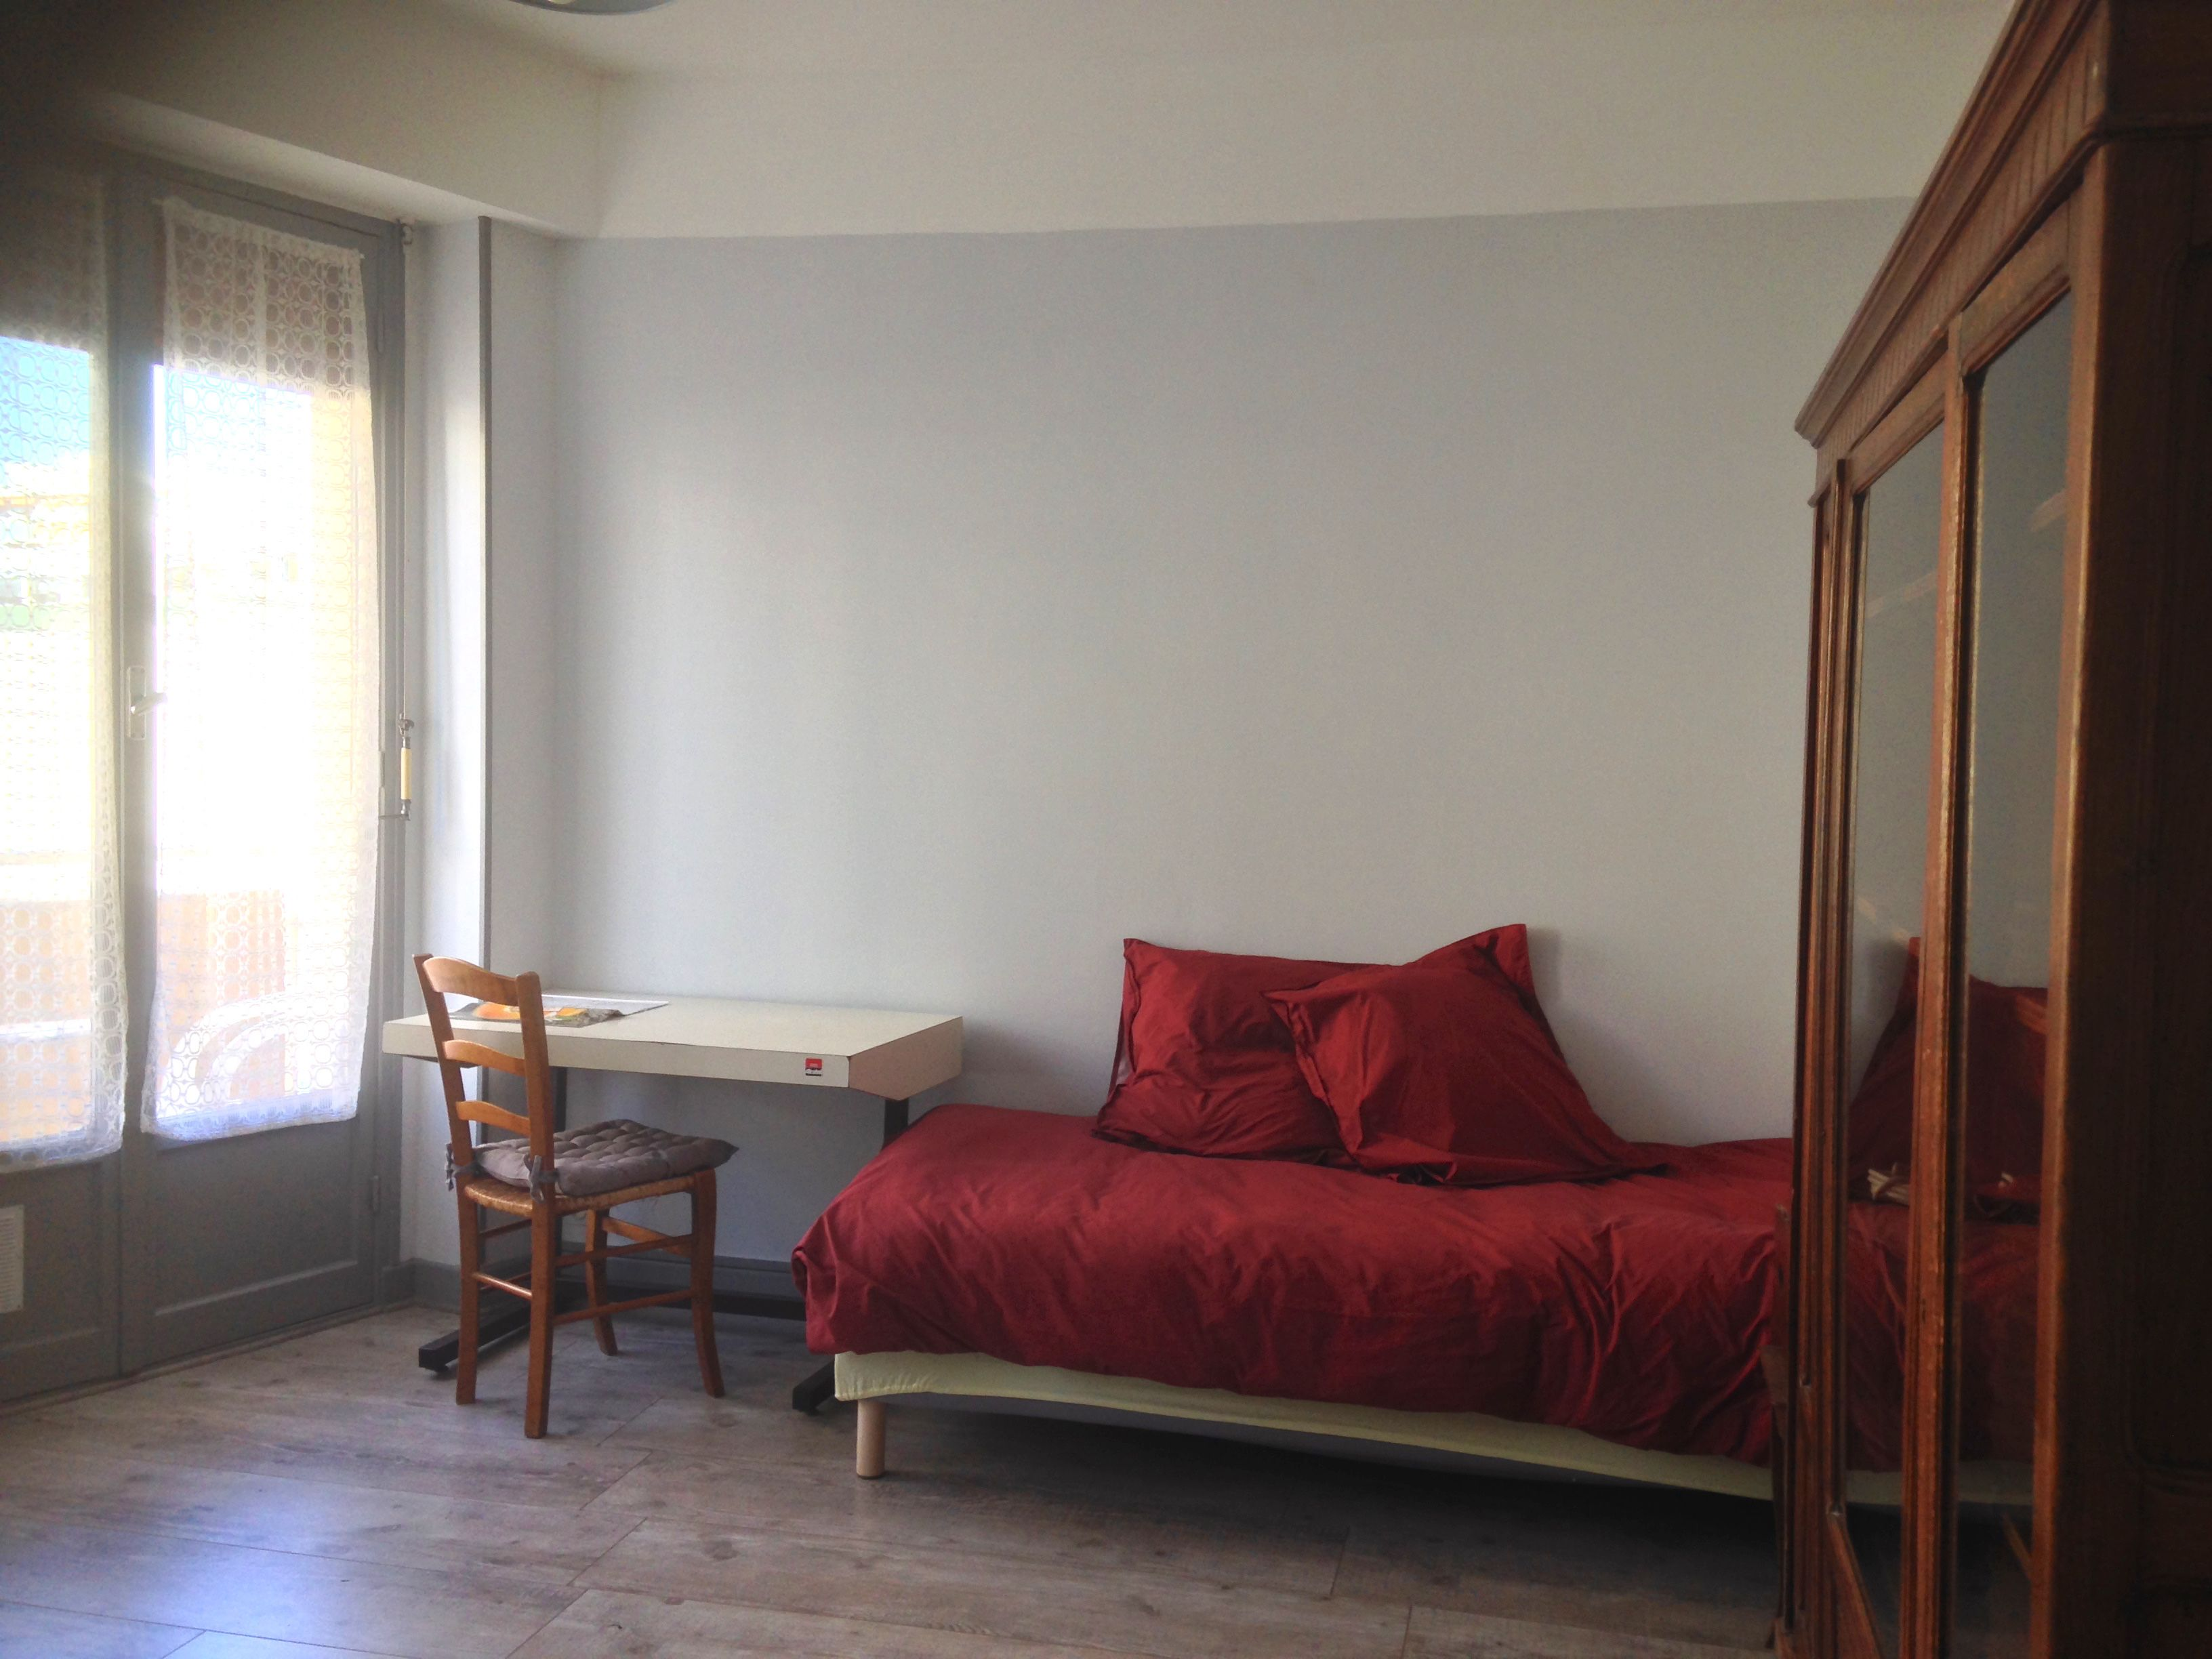 Colocation Nice INTERGENERATIONNELLE & Location Chambre à louer Nice INTERGENERATIONNELLE | Loue chambre meublée Nice INTERGENERATIONNELLE | Logement Nice INTERGENERATIONNELLE